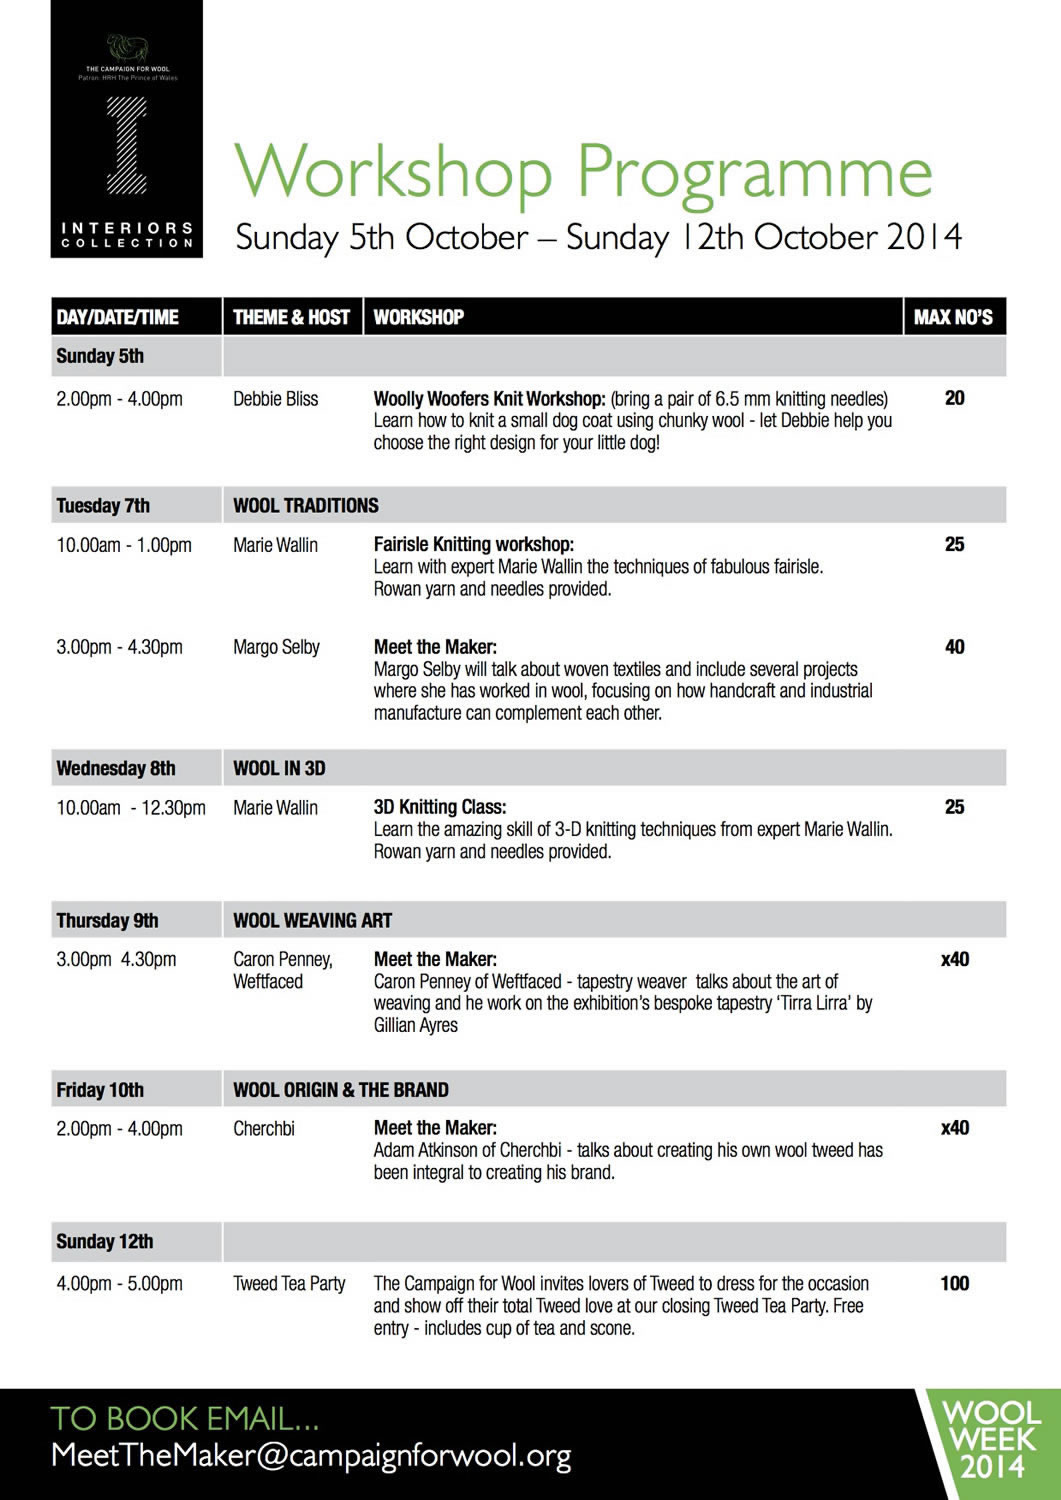 Wool Collections Interiors Workshop Schedule